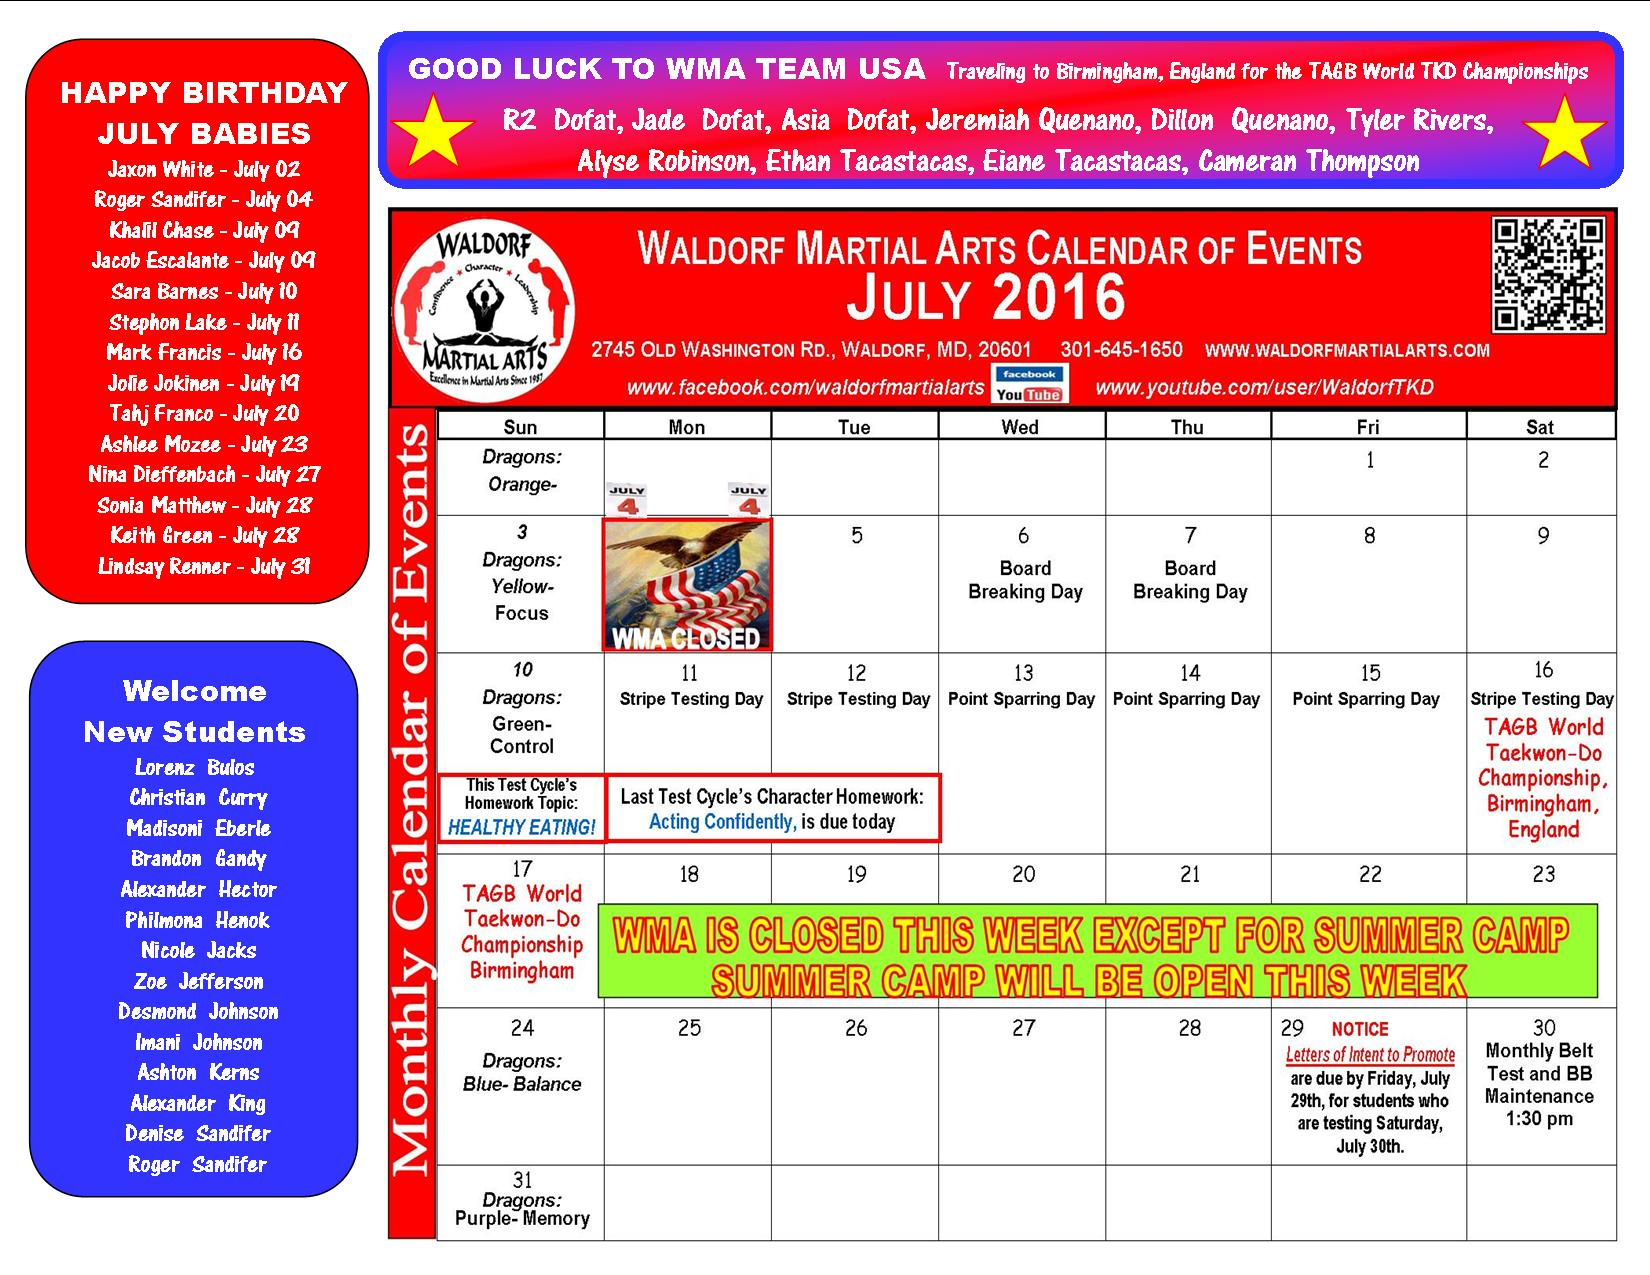 July 2016 Calendar of events and news